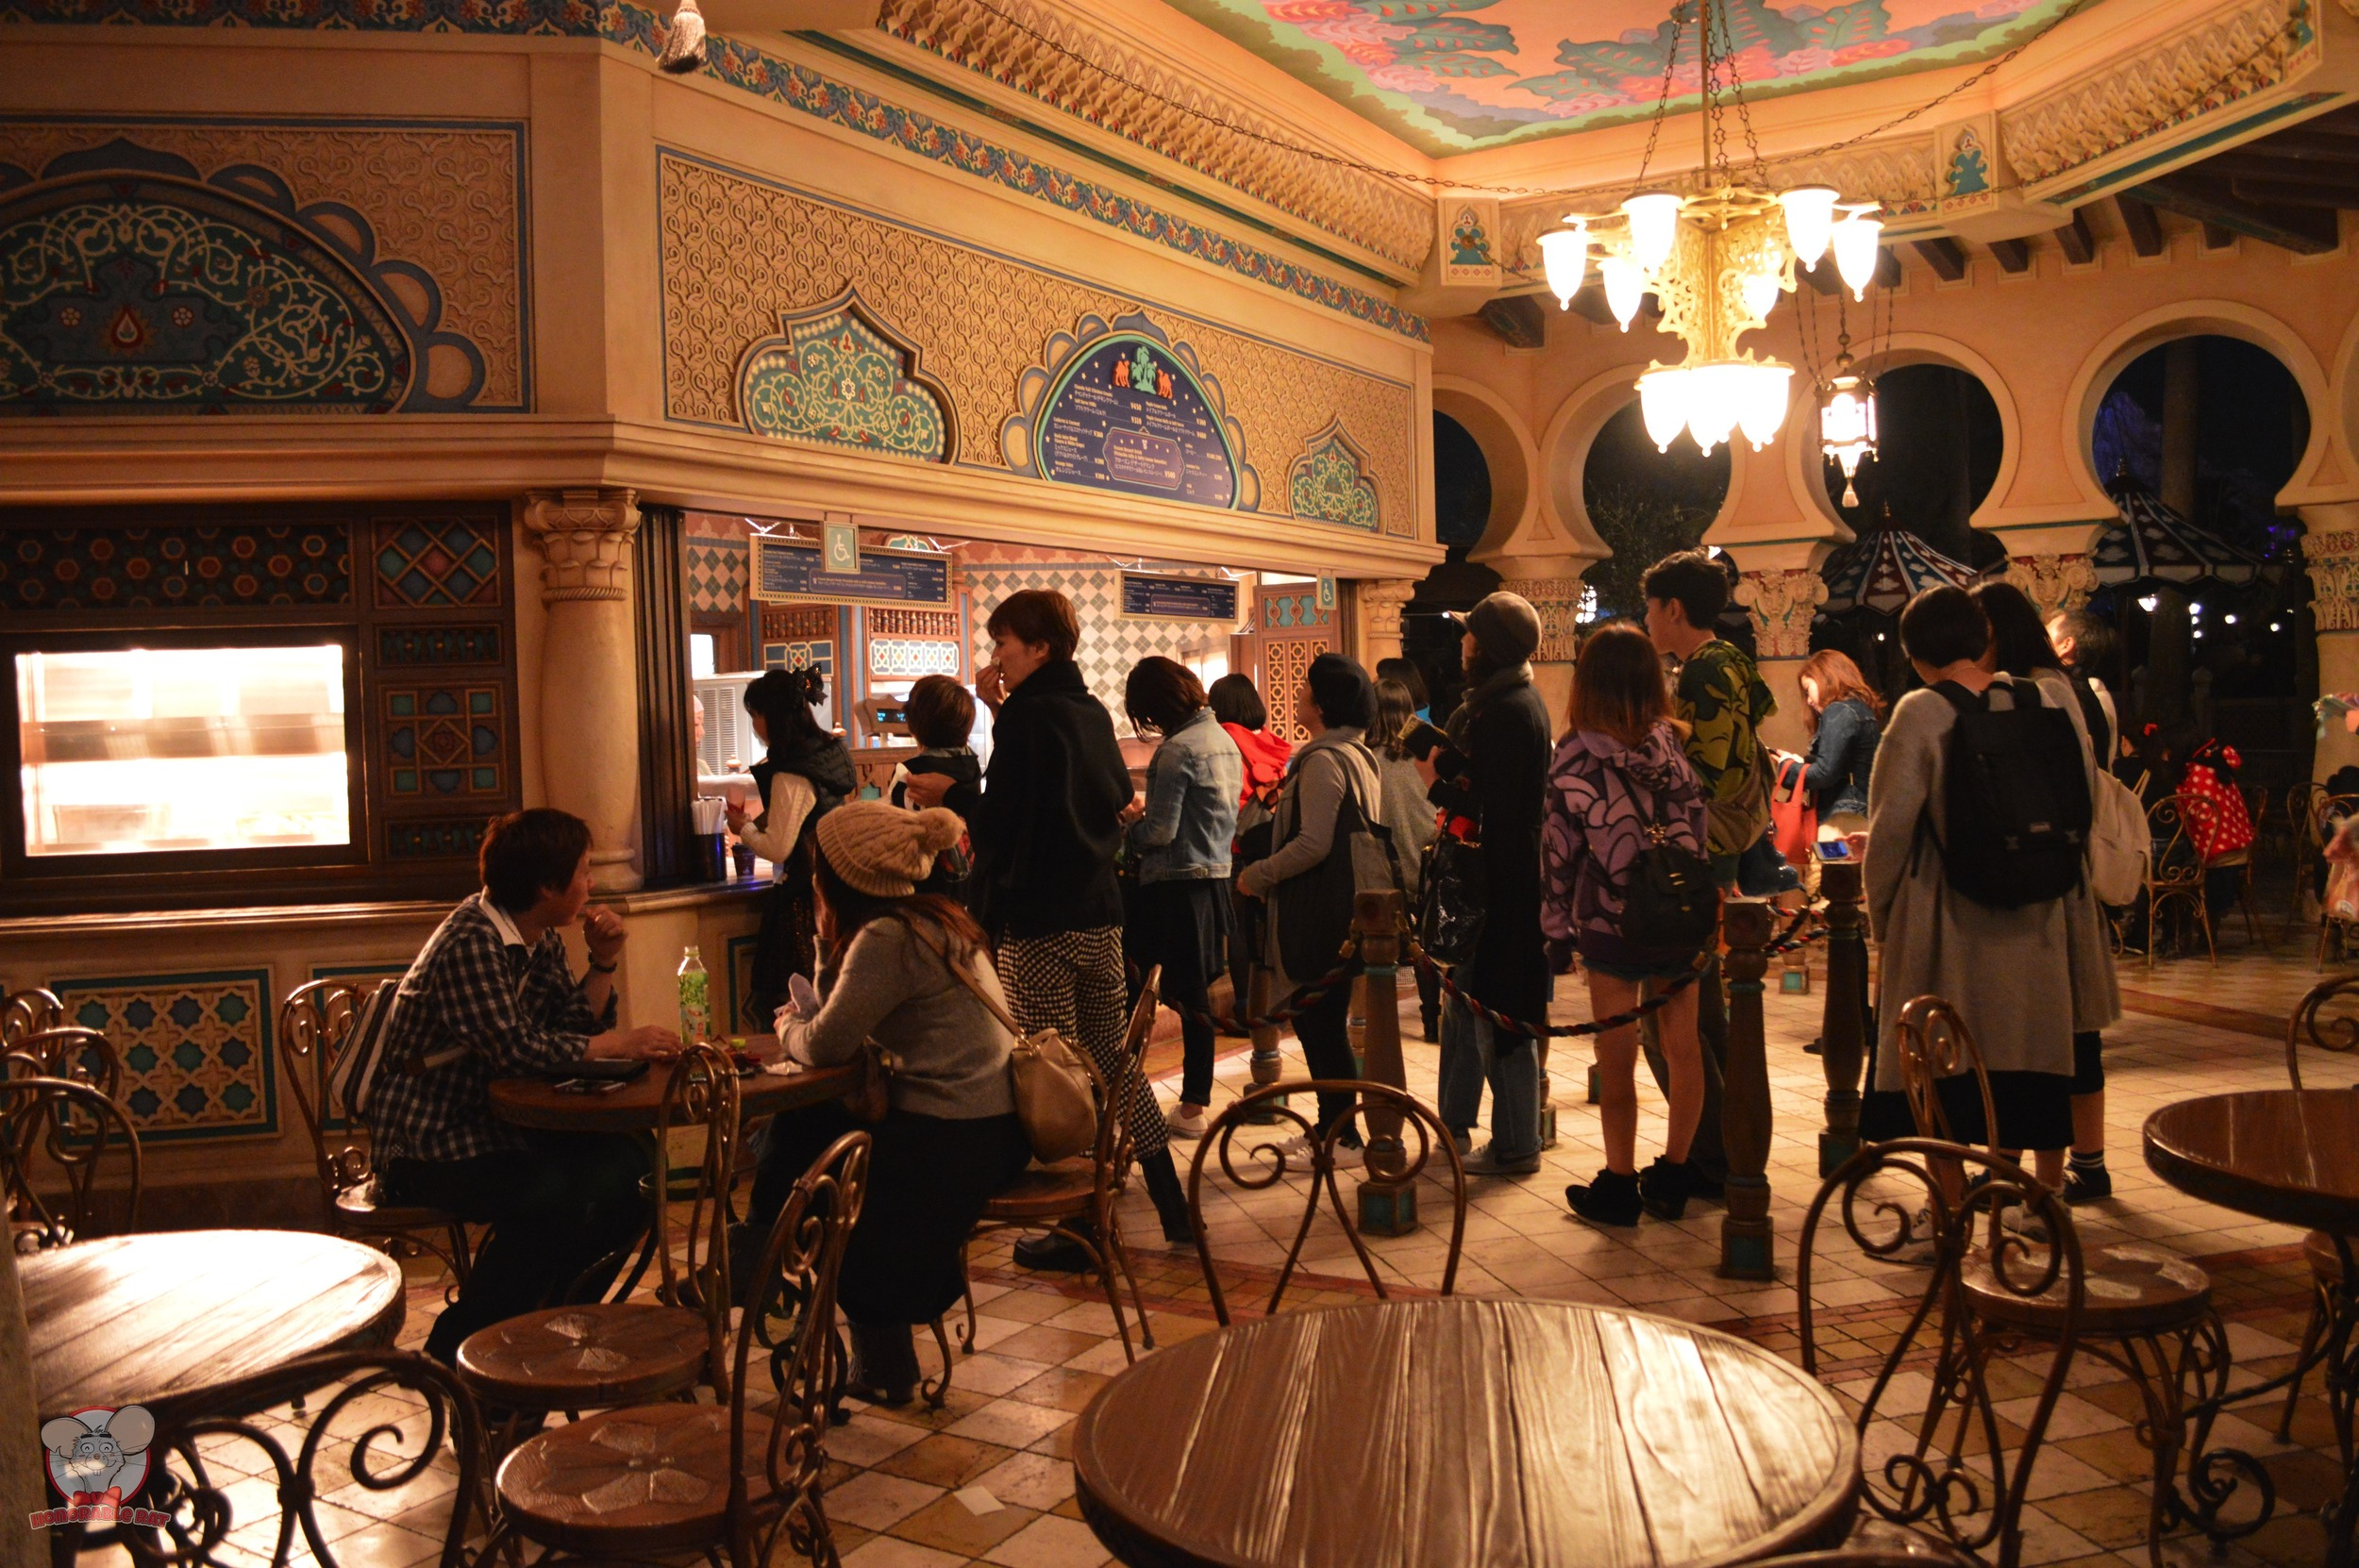 Sultan's Oasis's seating and line